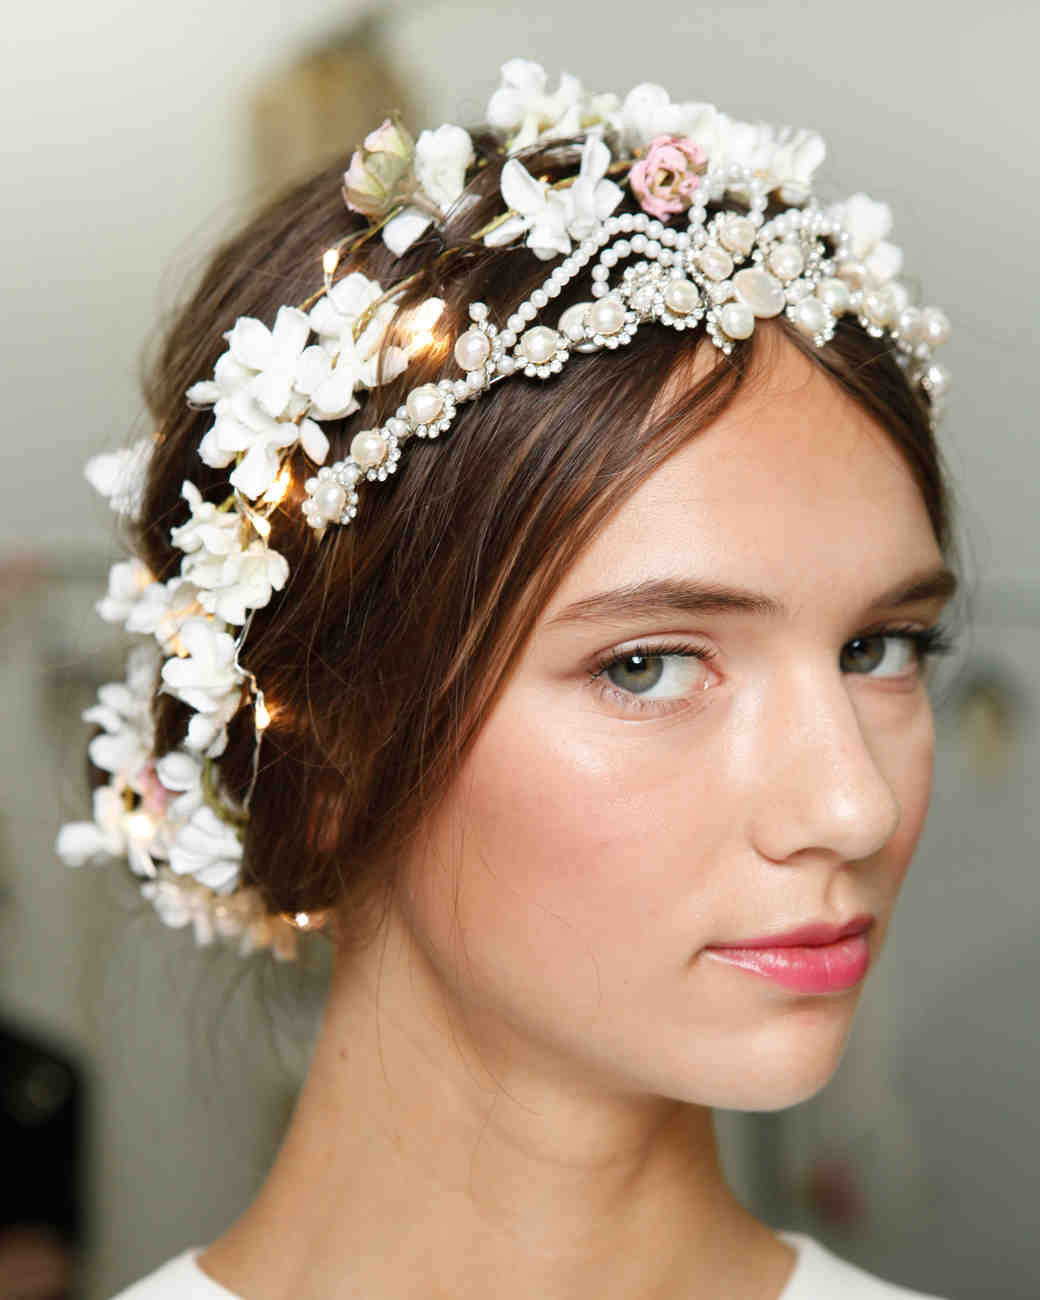 20 Wedding Hairstyles With Flowers: 4 Flower-Filled Wedding Hairstyles From The Bridal Shows